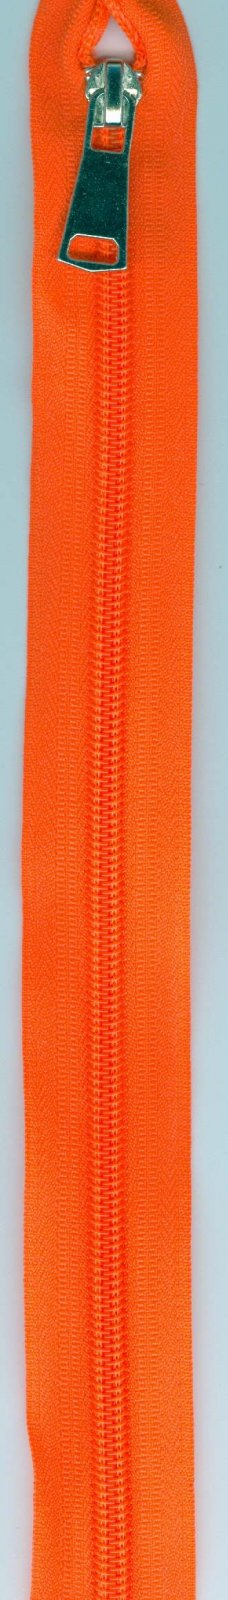 32 Separating Zipper #5 - Neon Orange with Silver Pull